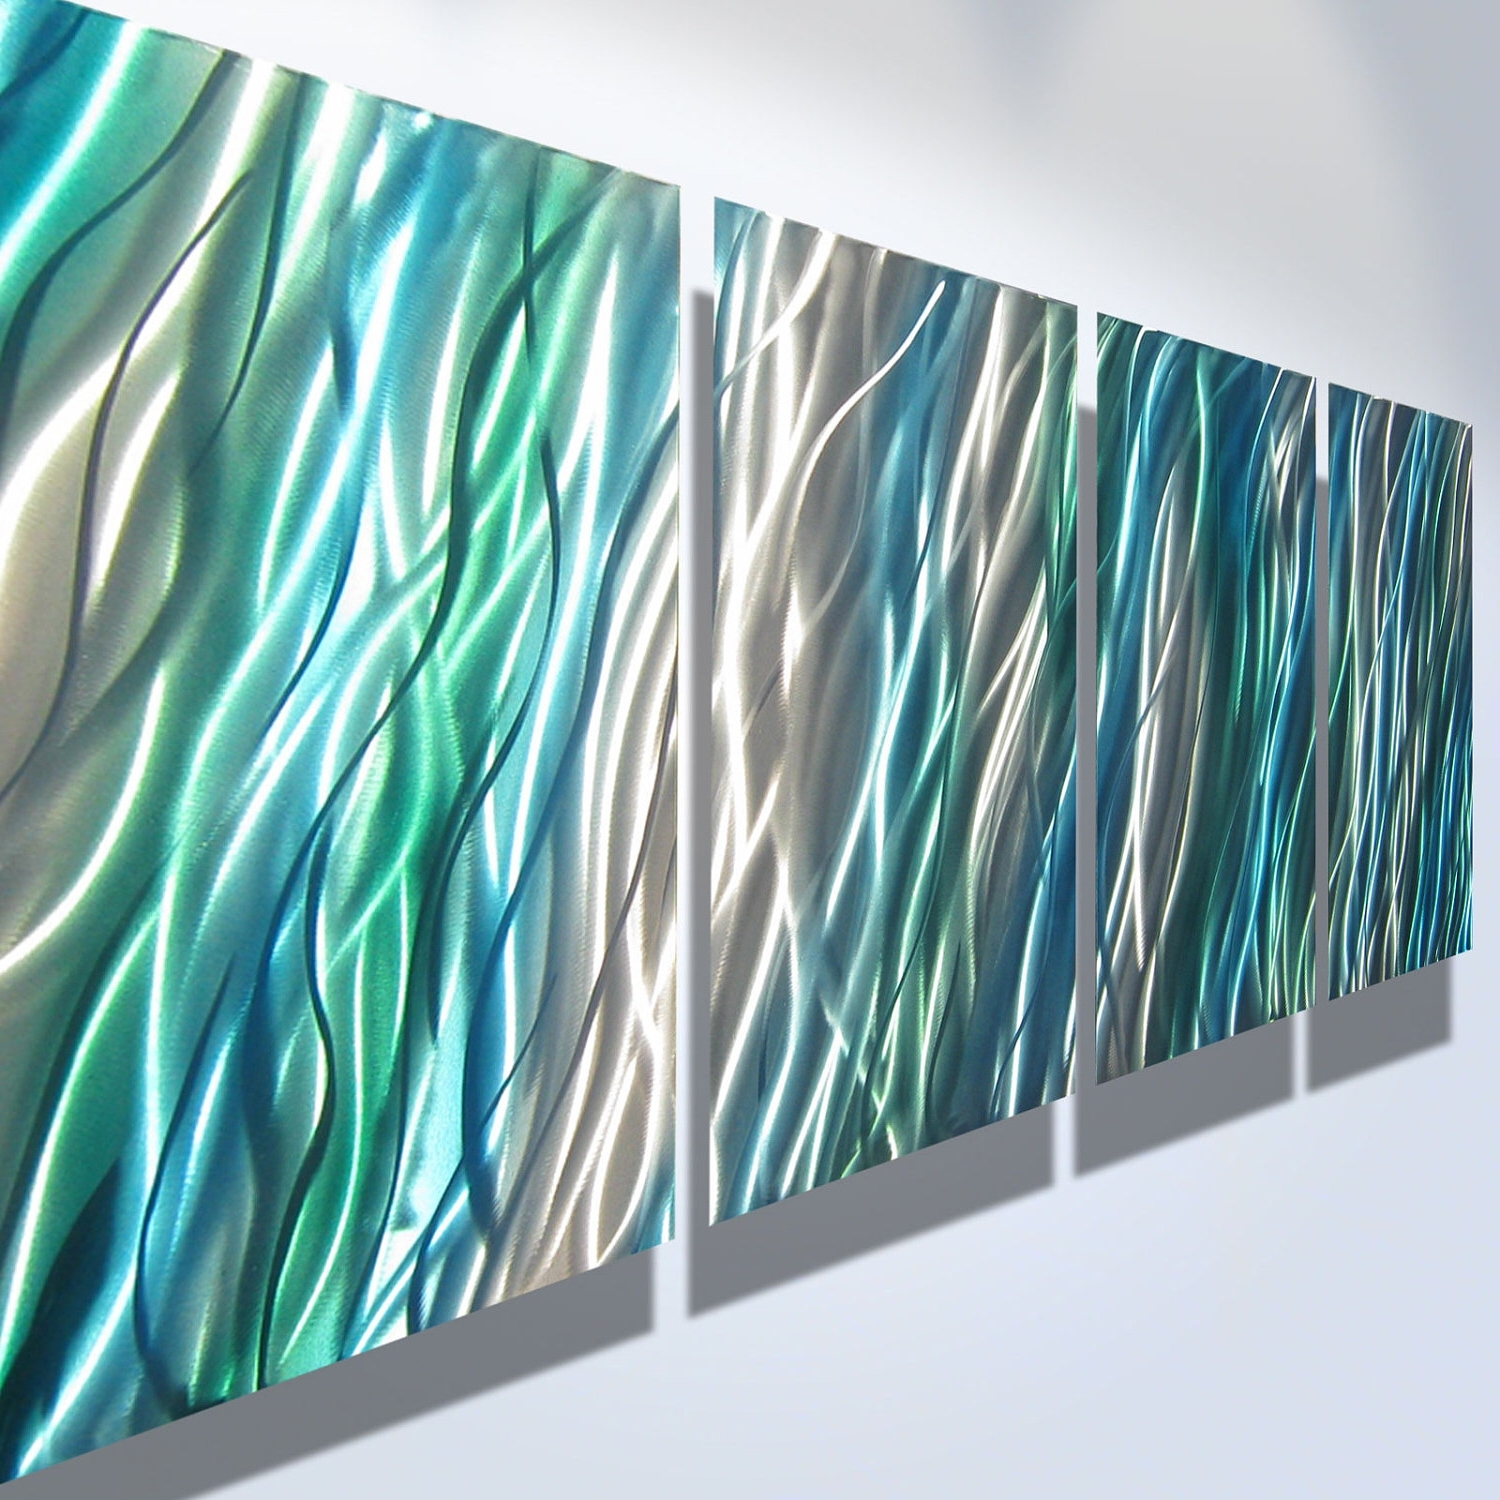 Popular Metal Wall Art Decor Abstract Contemporary Modern Sculpture With Teal Metal Wall Art (View 10 of 15)